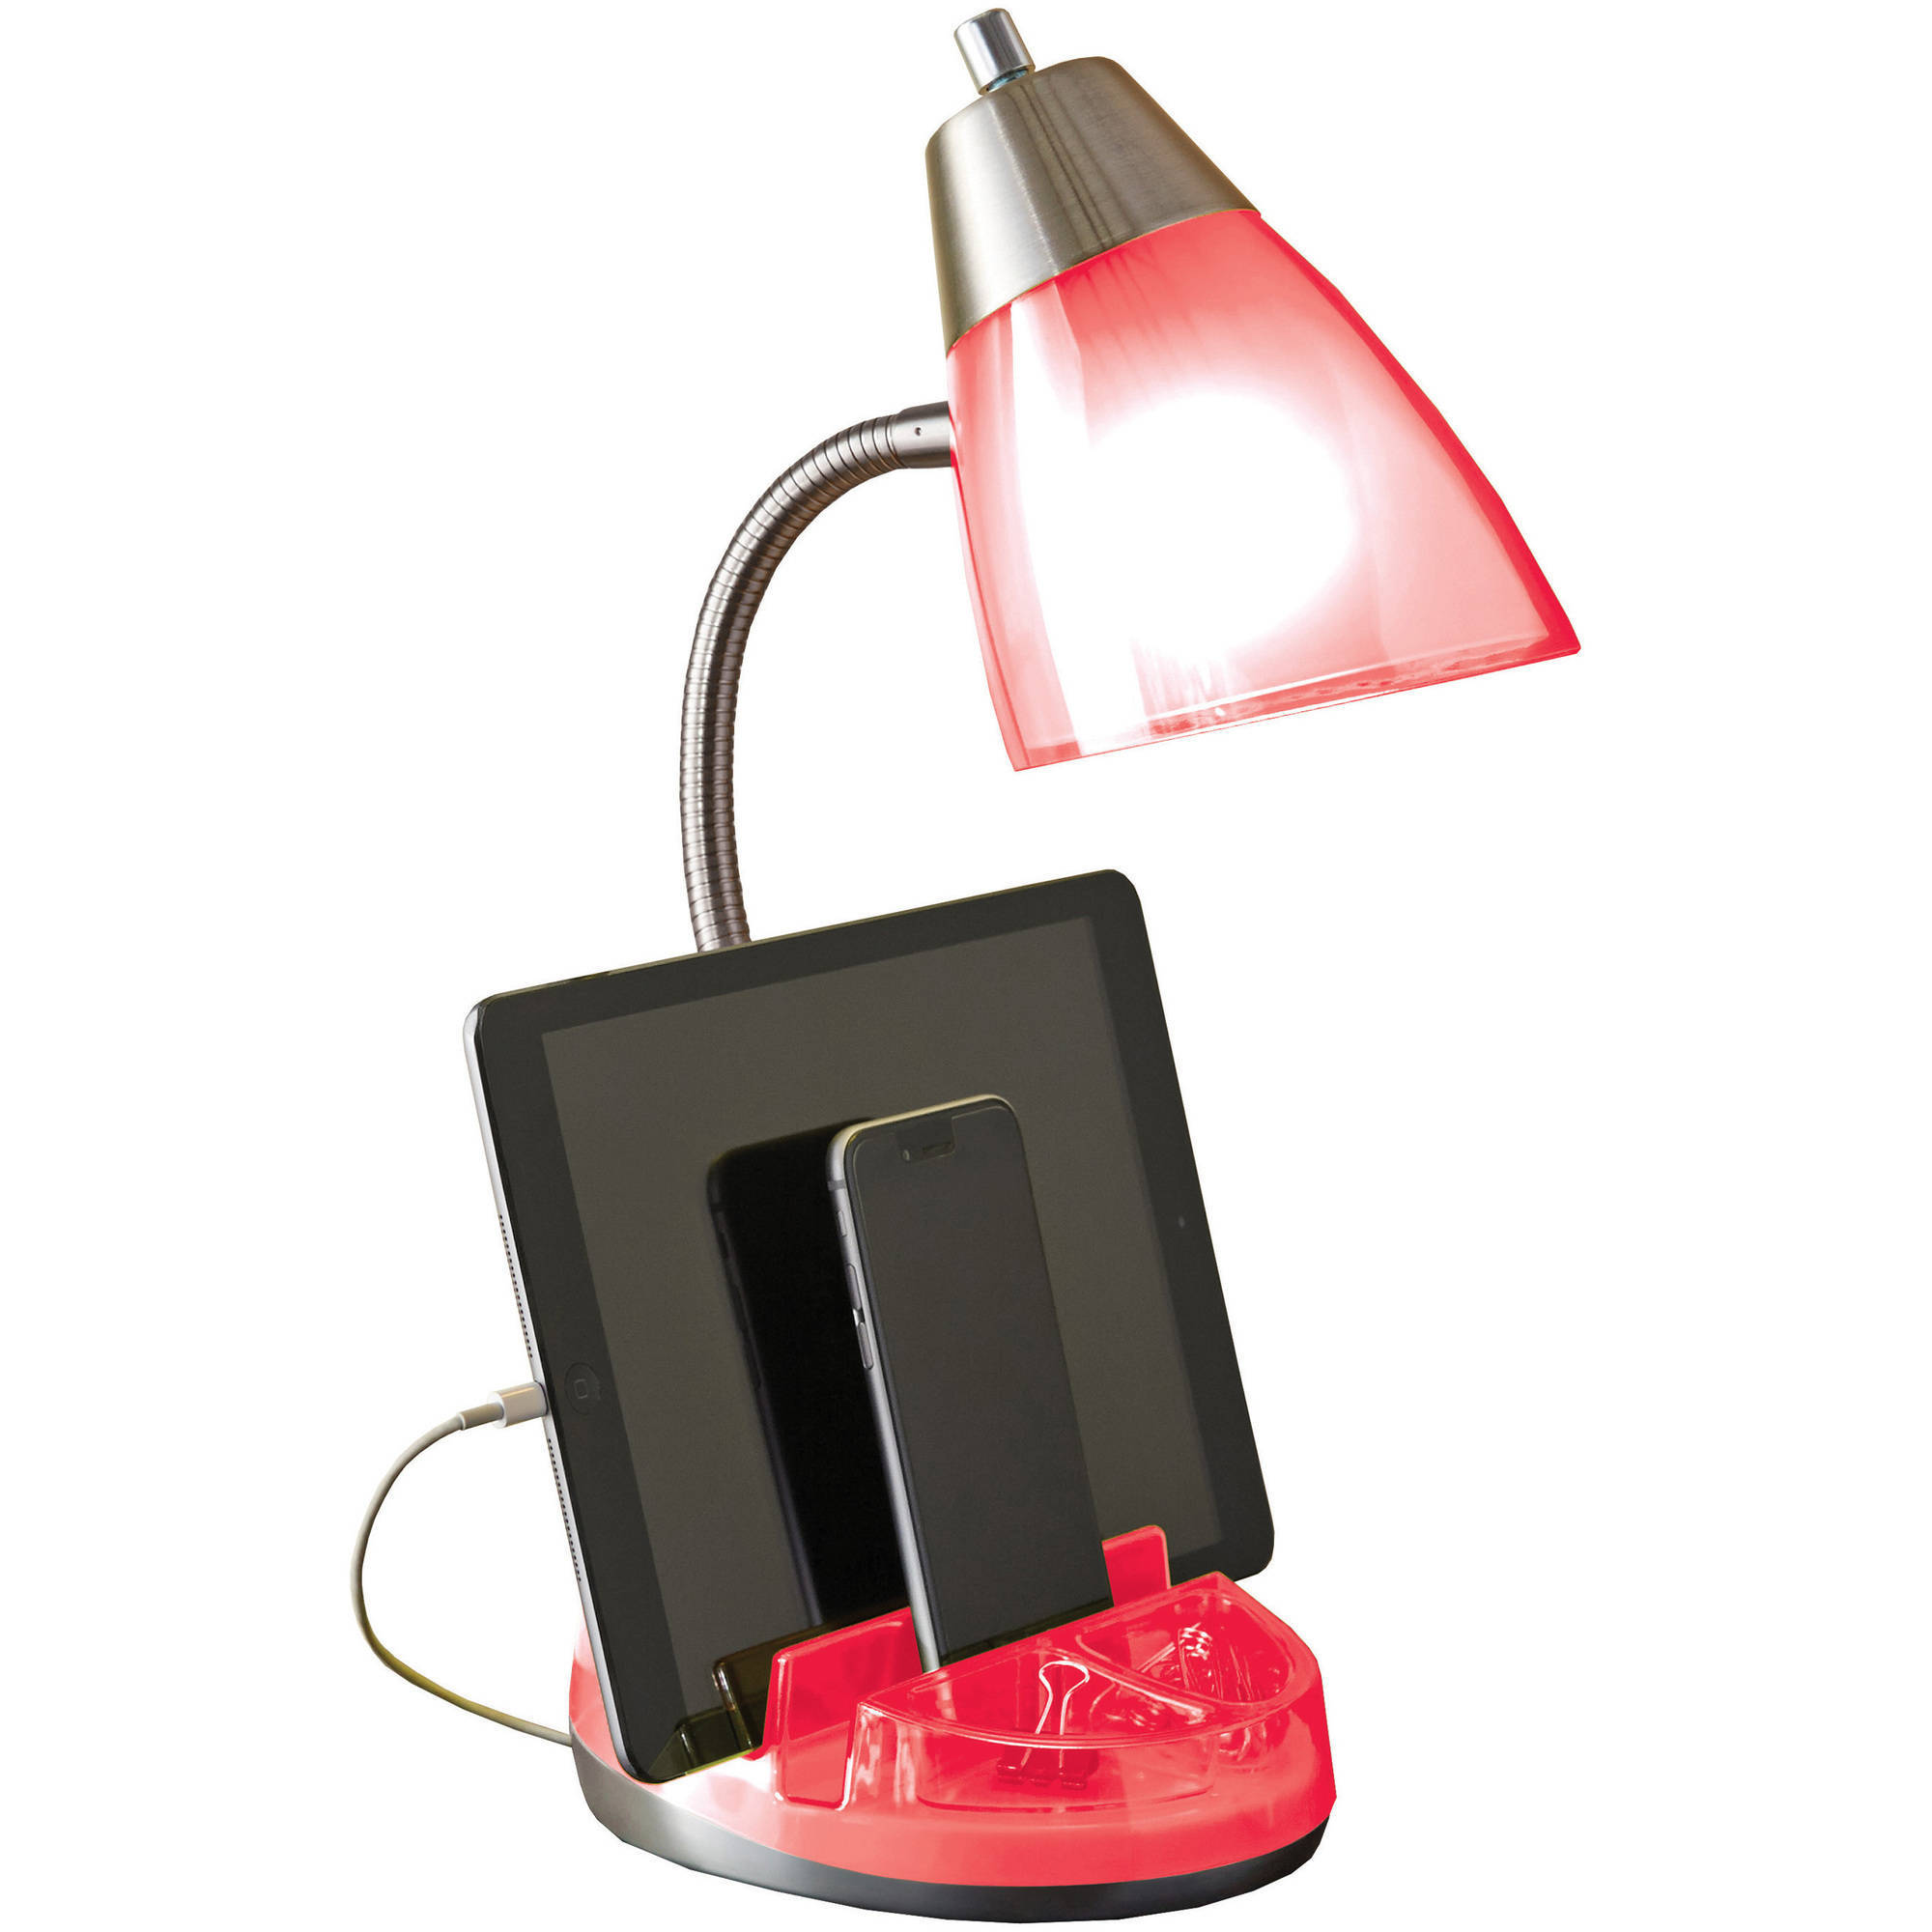 Mainstays Organizer Task Lamp with Bulb